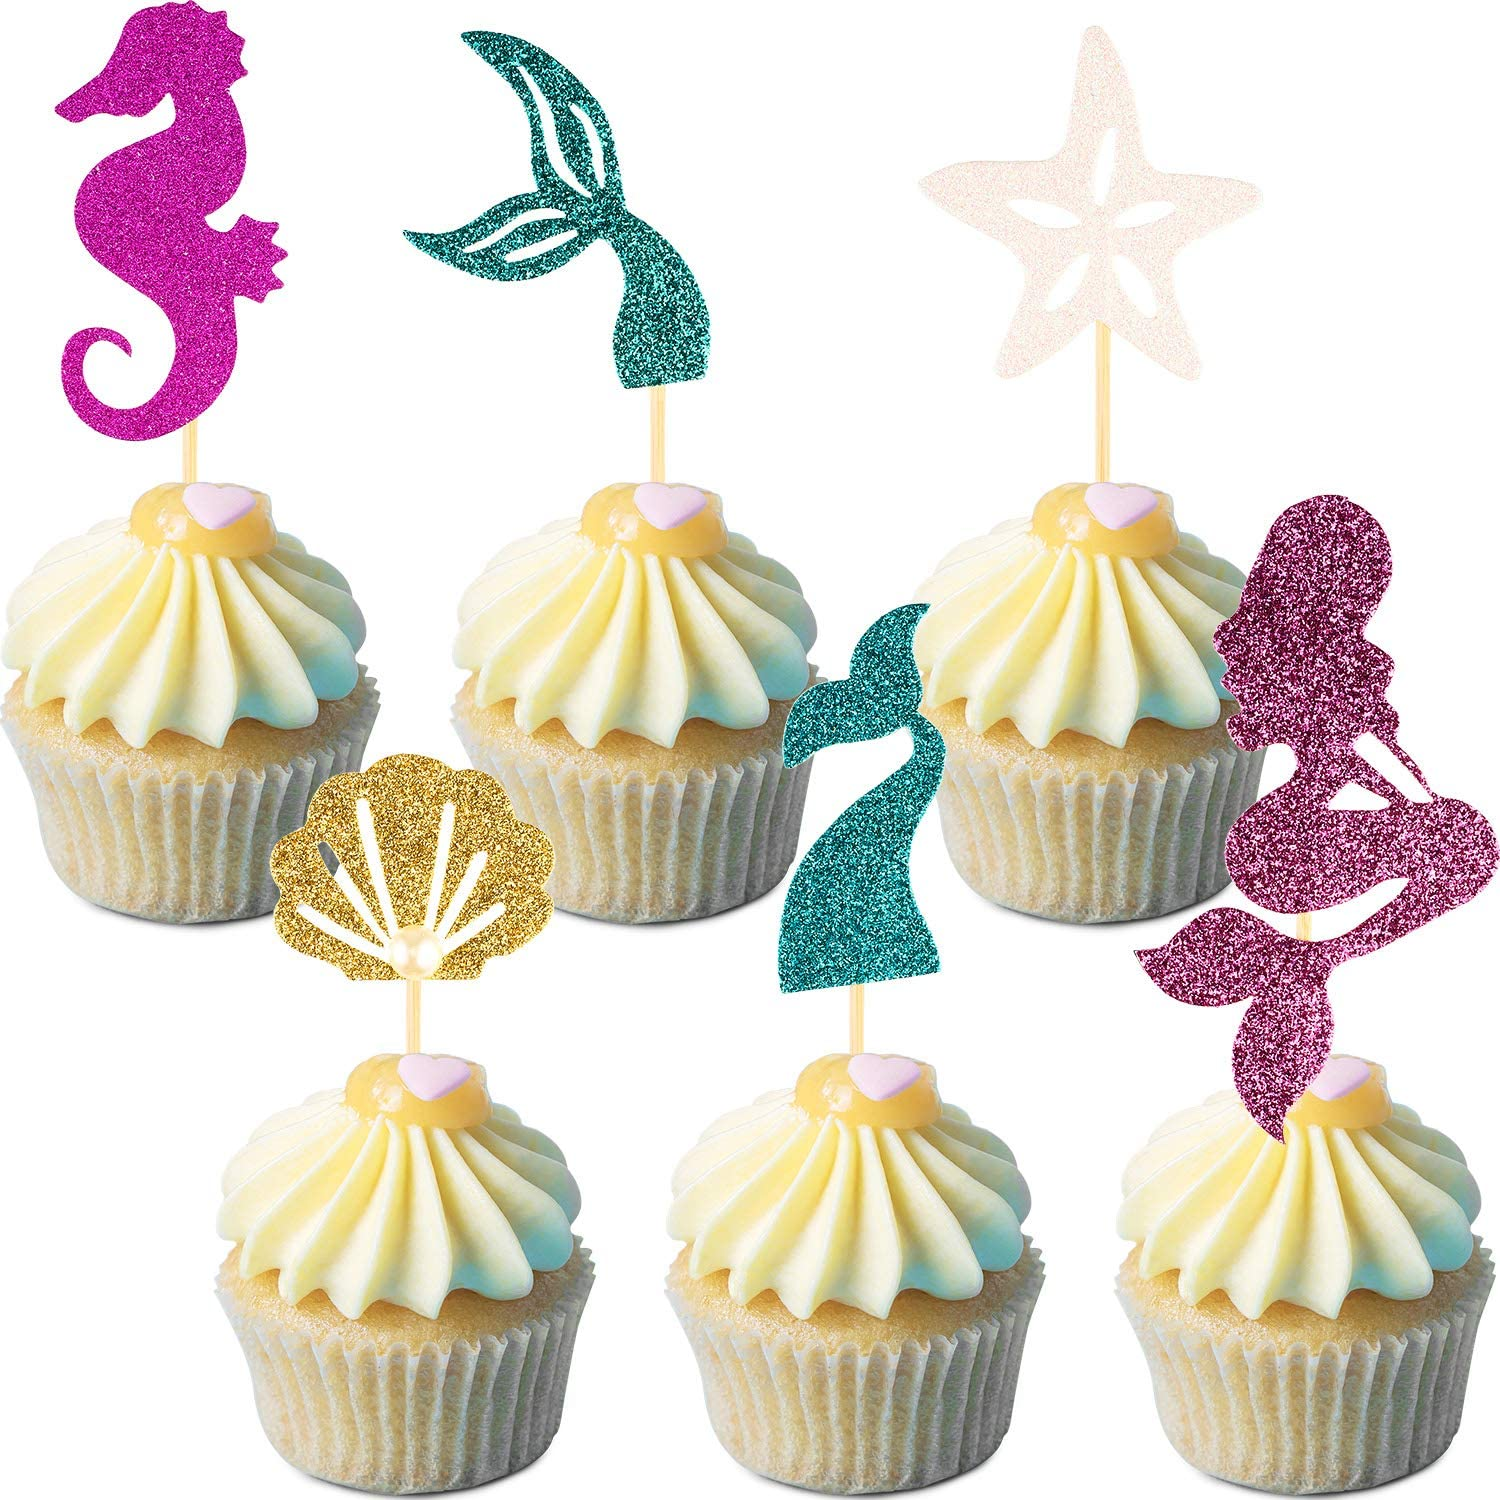 60 Pieces Mermaid Theme Glitter Cupcake Toppers Cake Picks Include Mermaid, Fishtail, Seahorse, Seashell and Starfish Cake Topper for Birthday Baby Shower